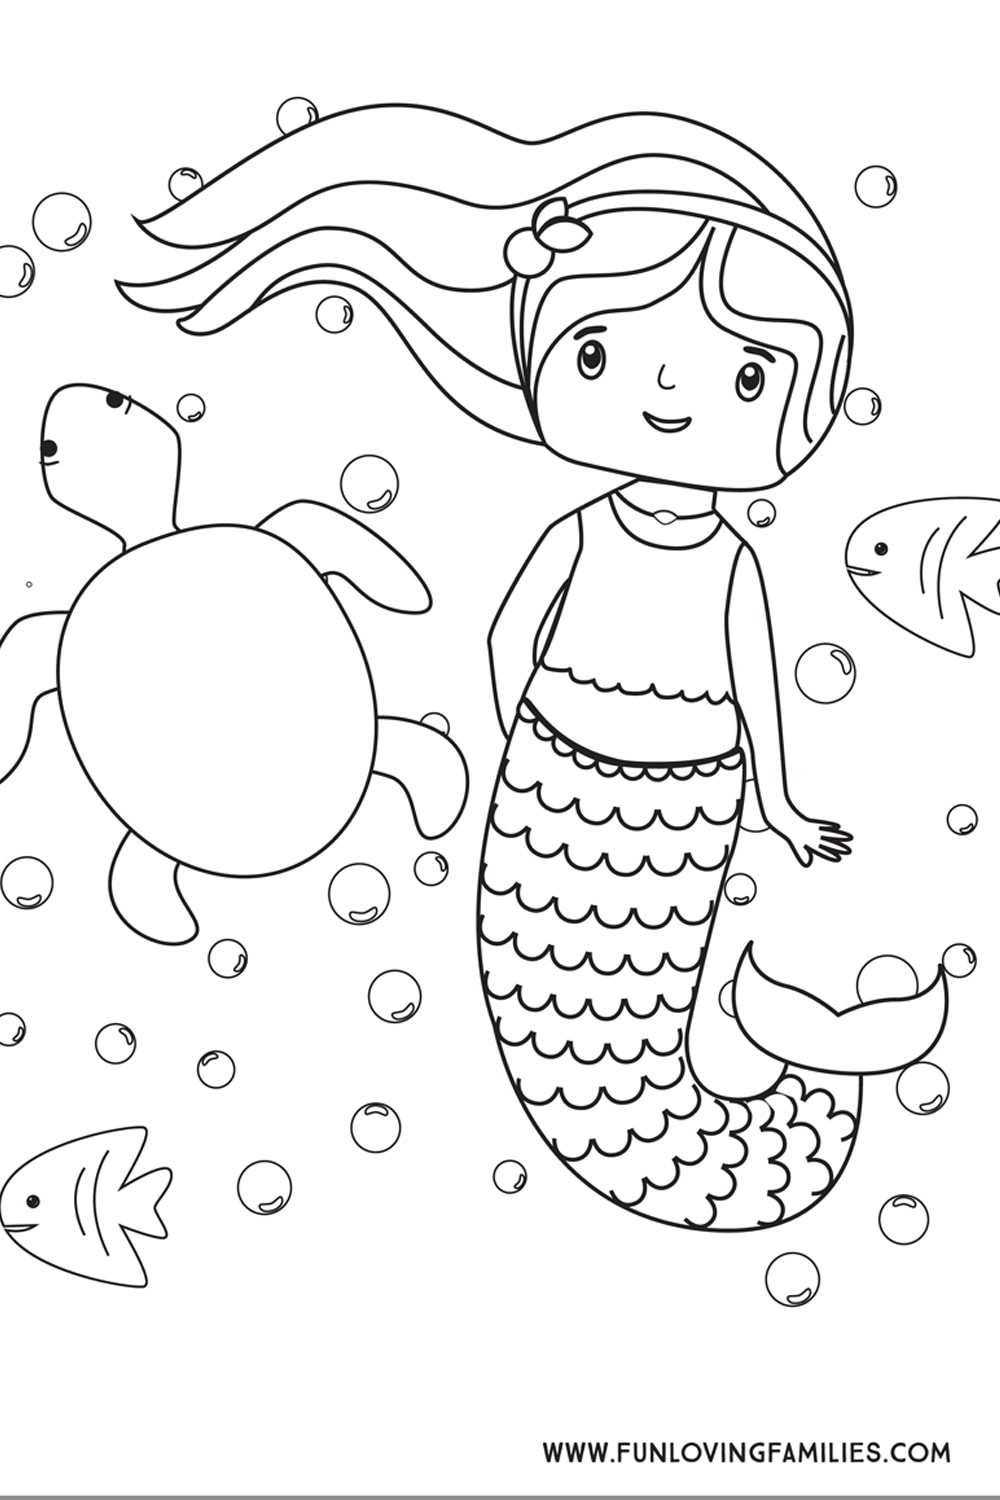 - 6 Cute Mermaid Coloring Pages For Kids (Free Printables) - Fun Loving  Families